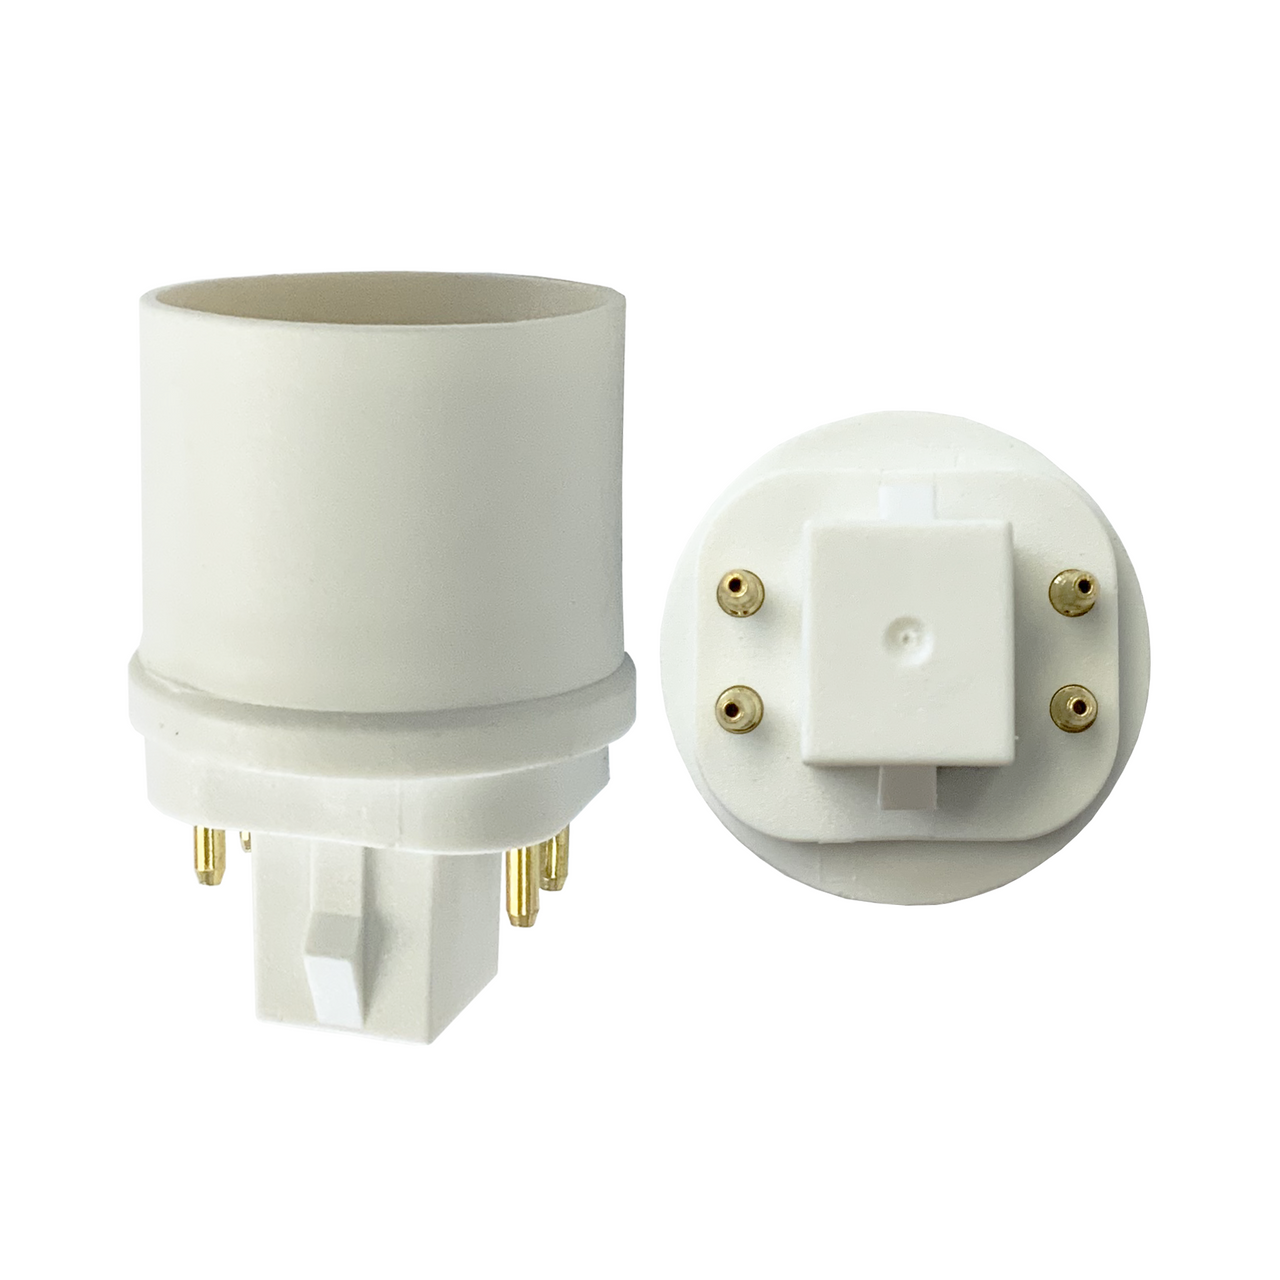 G24 BASE 4 PIN CFL TO MEDIUM E26 SOCKET ADAPTER INDUSTRIAL GRADE G24 BASE 4 PIN CFL ADAPTER